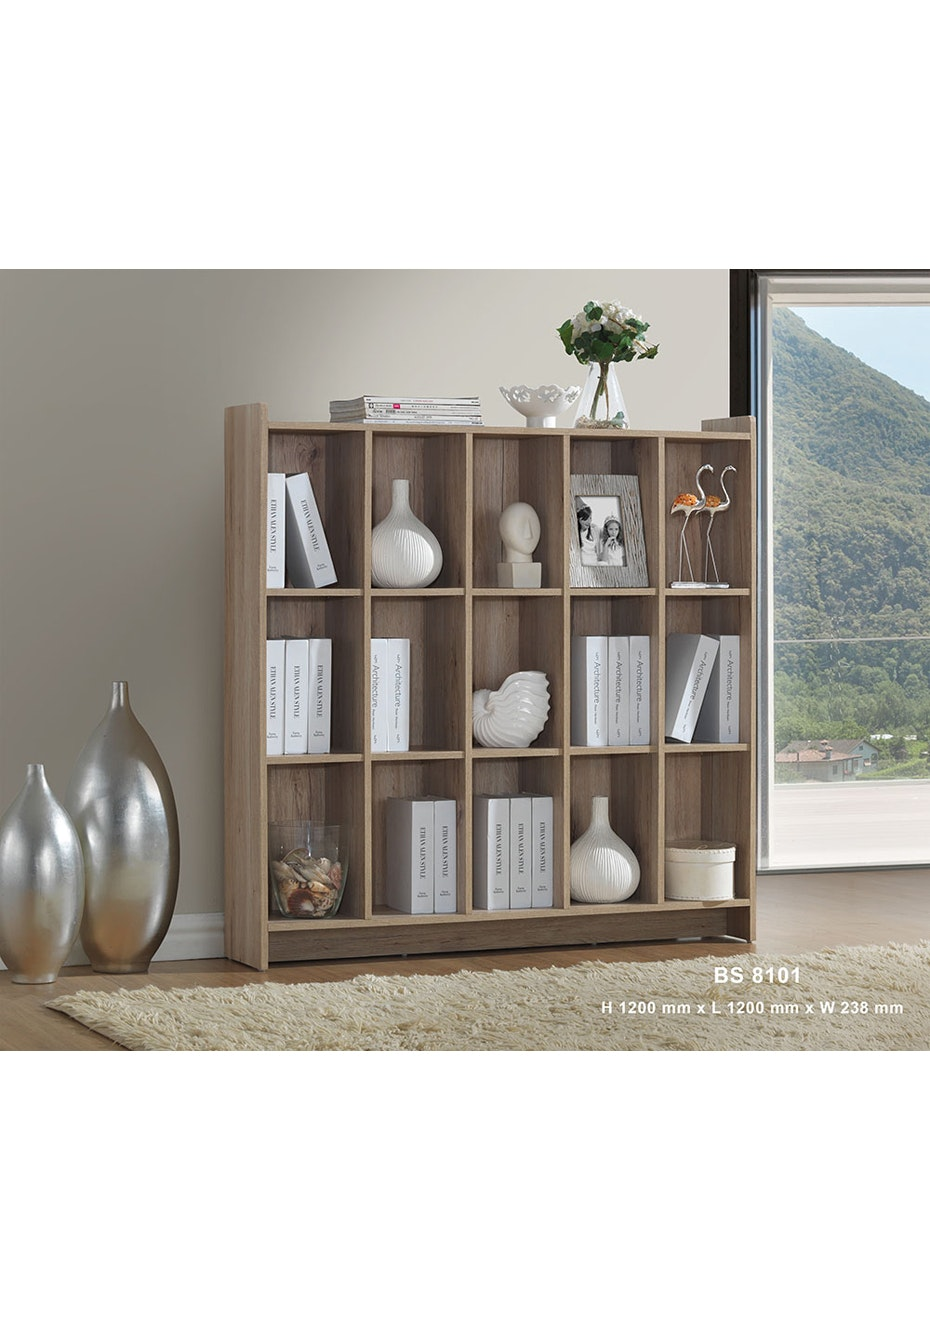 Large Display Cabinet - Washed Wood